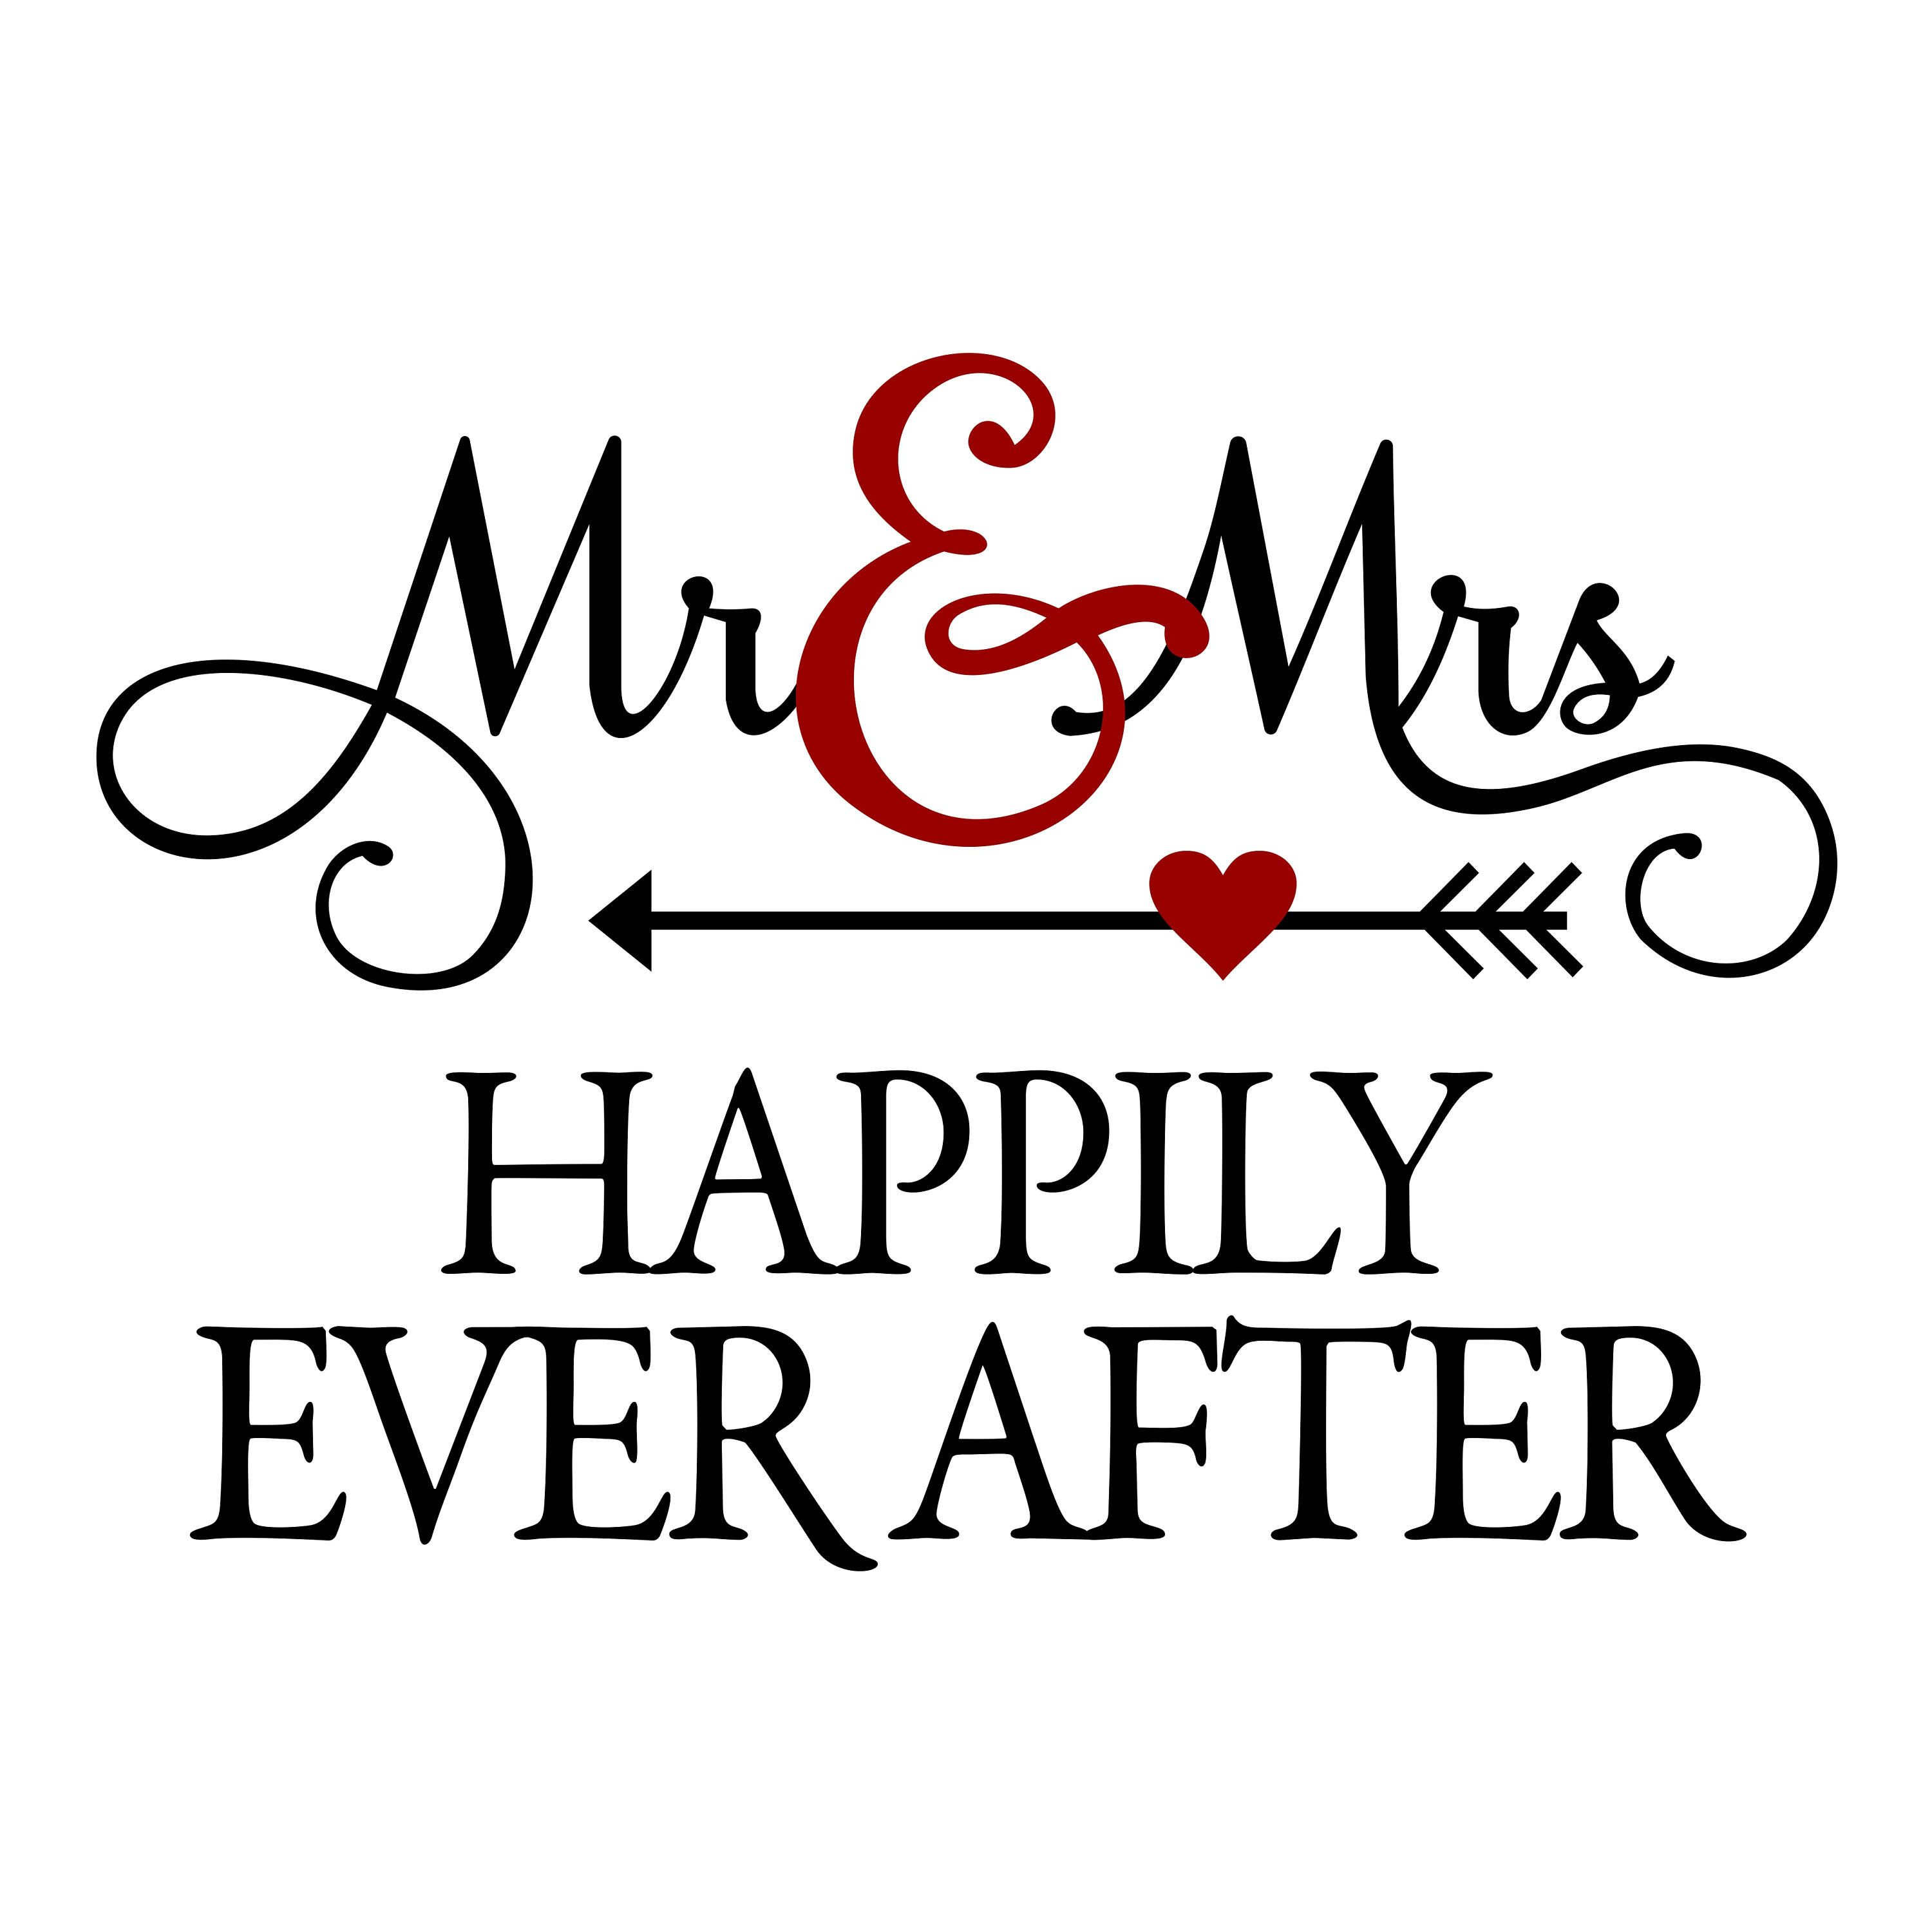 Mr Mrs Happily Ever After Phrase Graphics Svg Dxf Eps Png Cdr Ai Pdf Vector Art Clipart Instant Downloa Lettering Silhouette Cameo Projects Silhouette Design